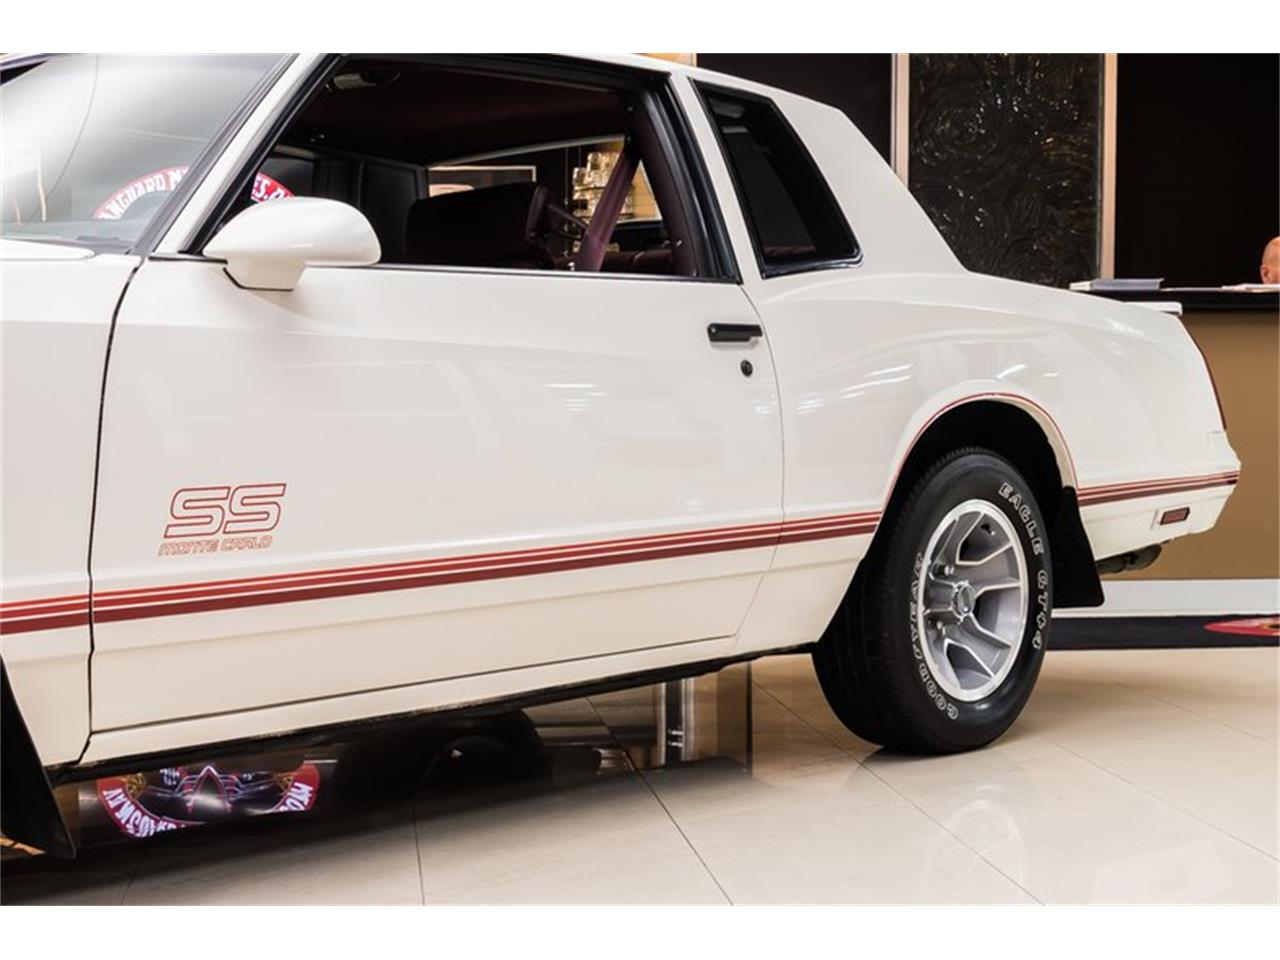 Large Picture of 1988 Chevrolet Monte Carlo - $32,900.00 - Q9DY